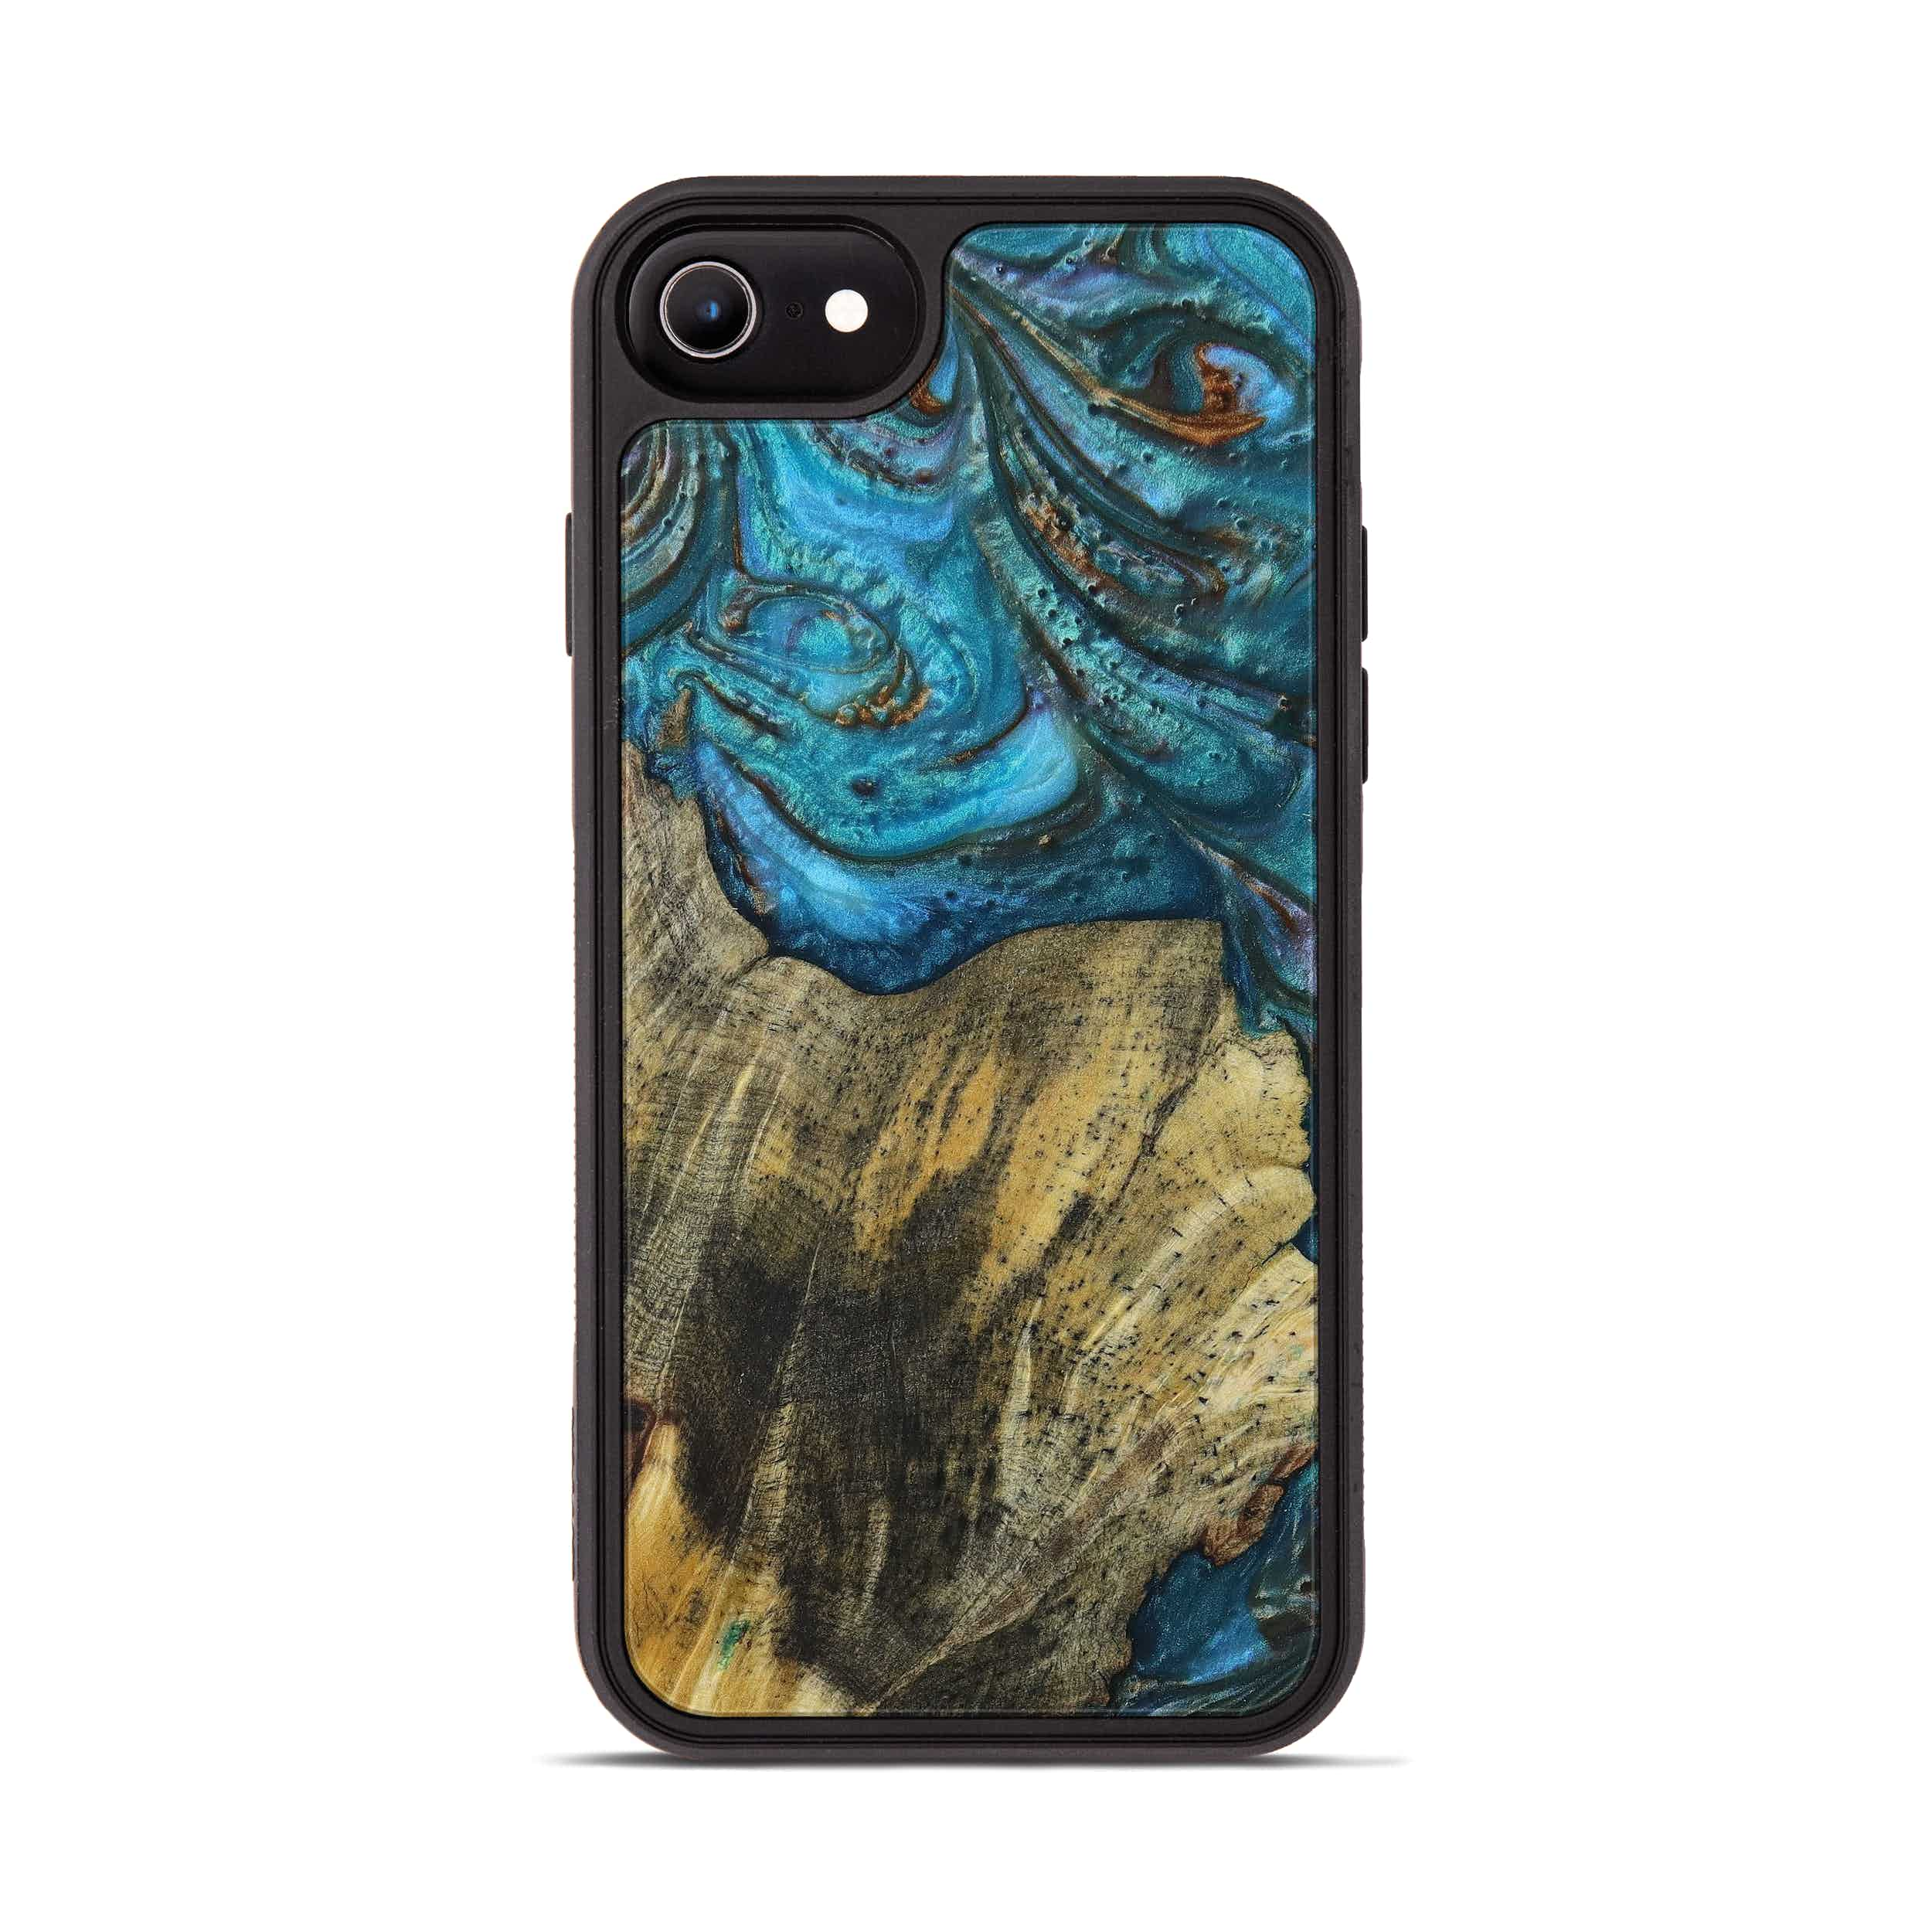 iPhone 6s Wood+Resin Phone Case - Maier (Teal & Gold, 397265)